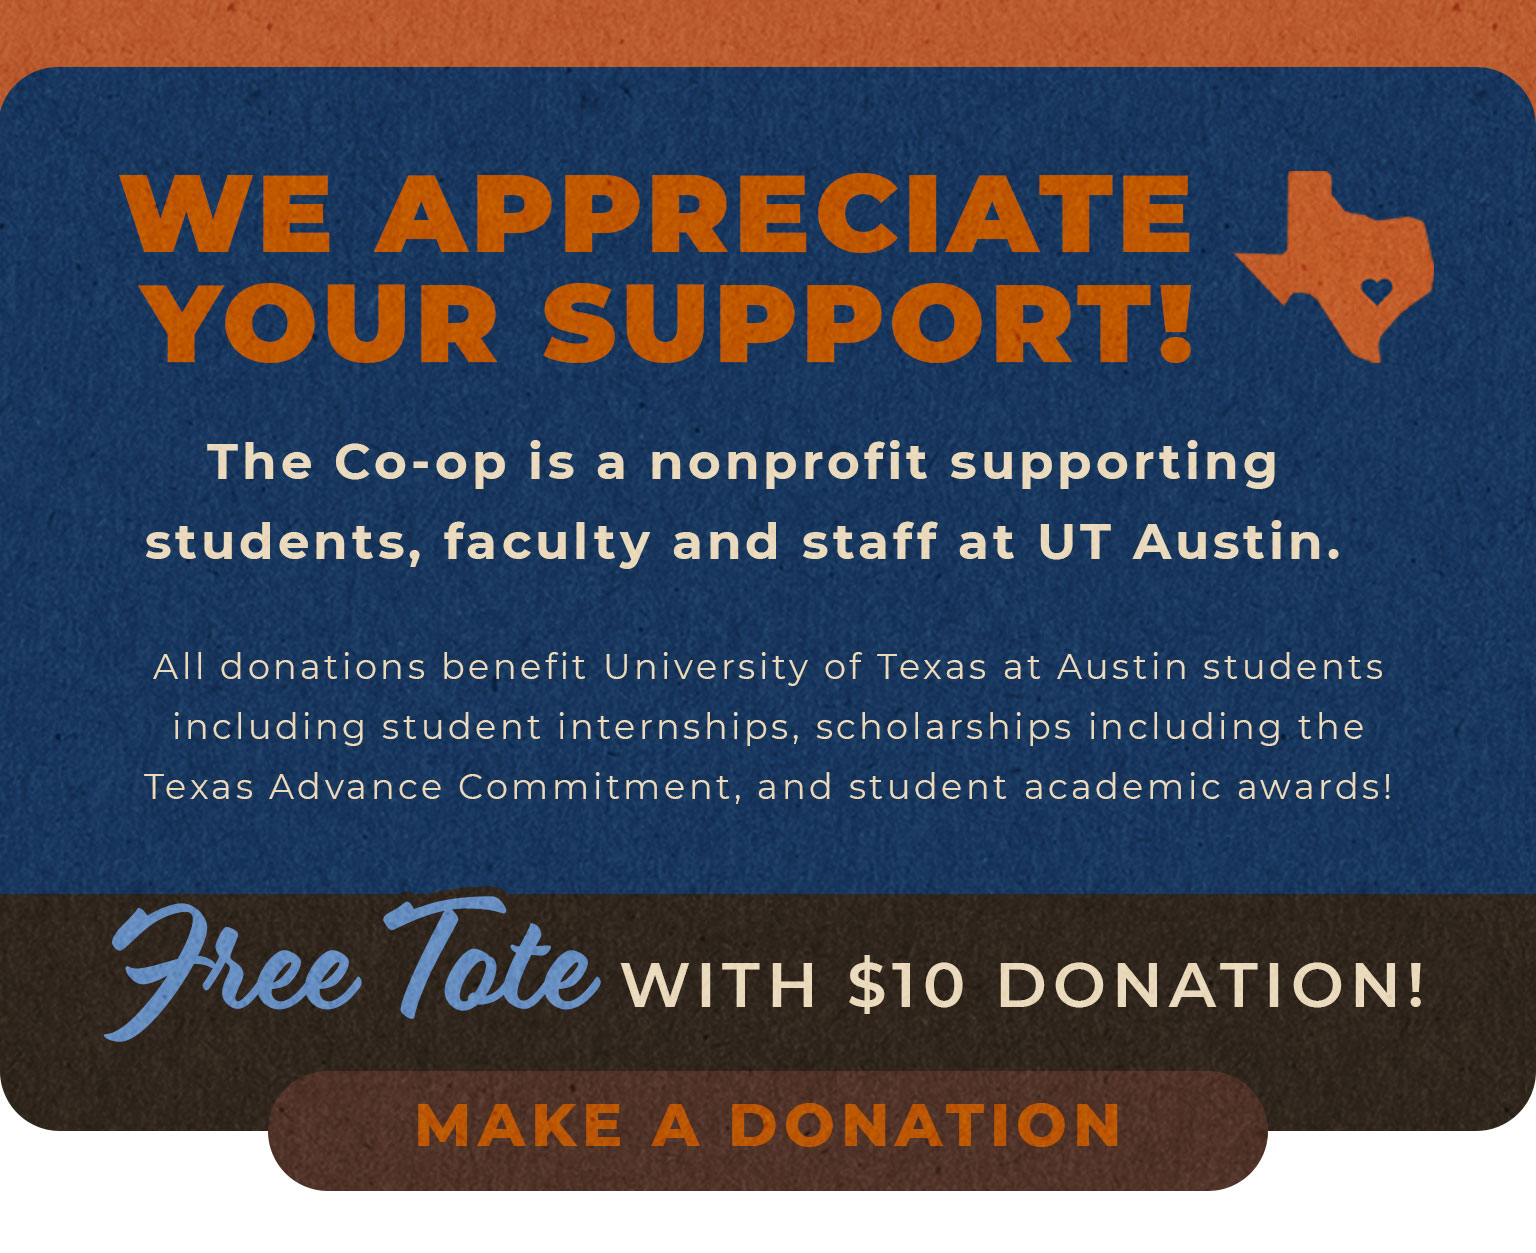 We appreciate your support! Make a Donation